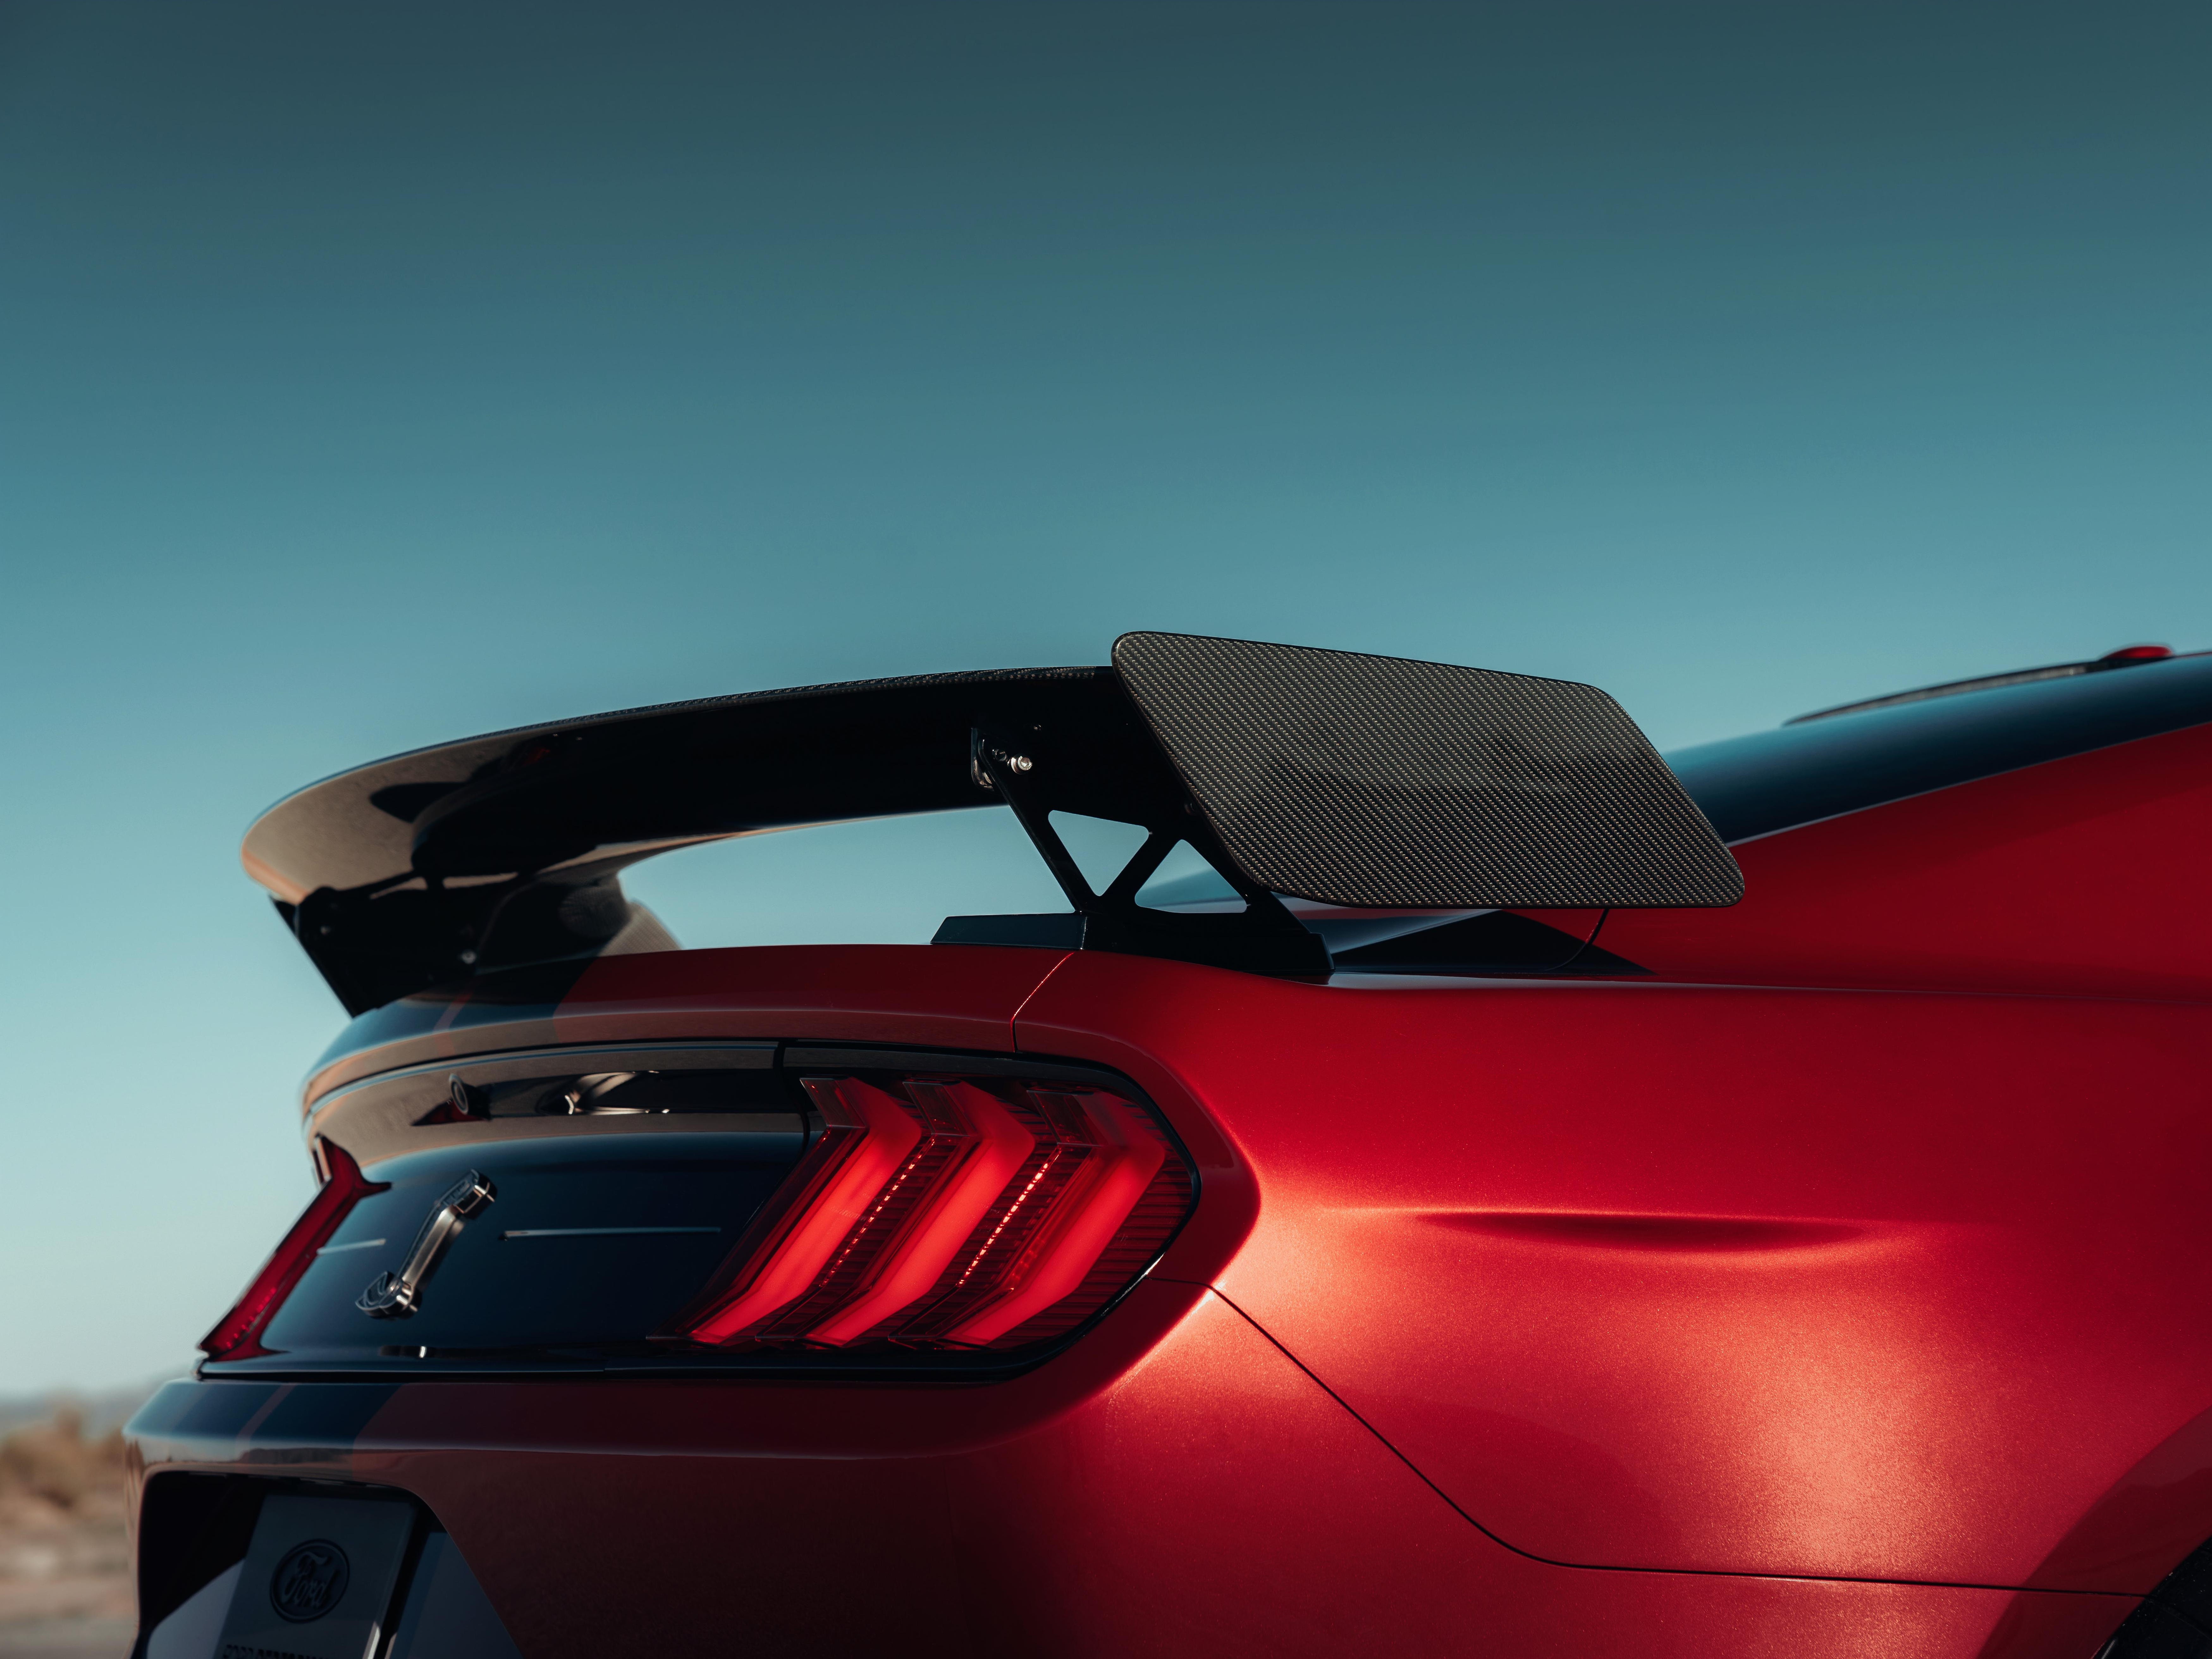 This is the spoiler on the Mustang GT500.